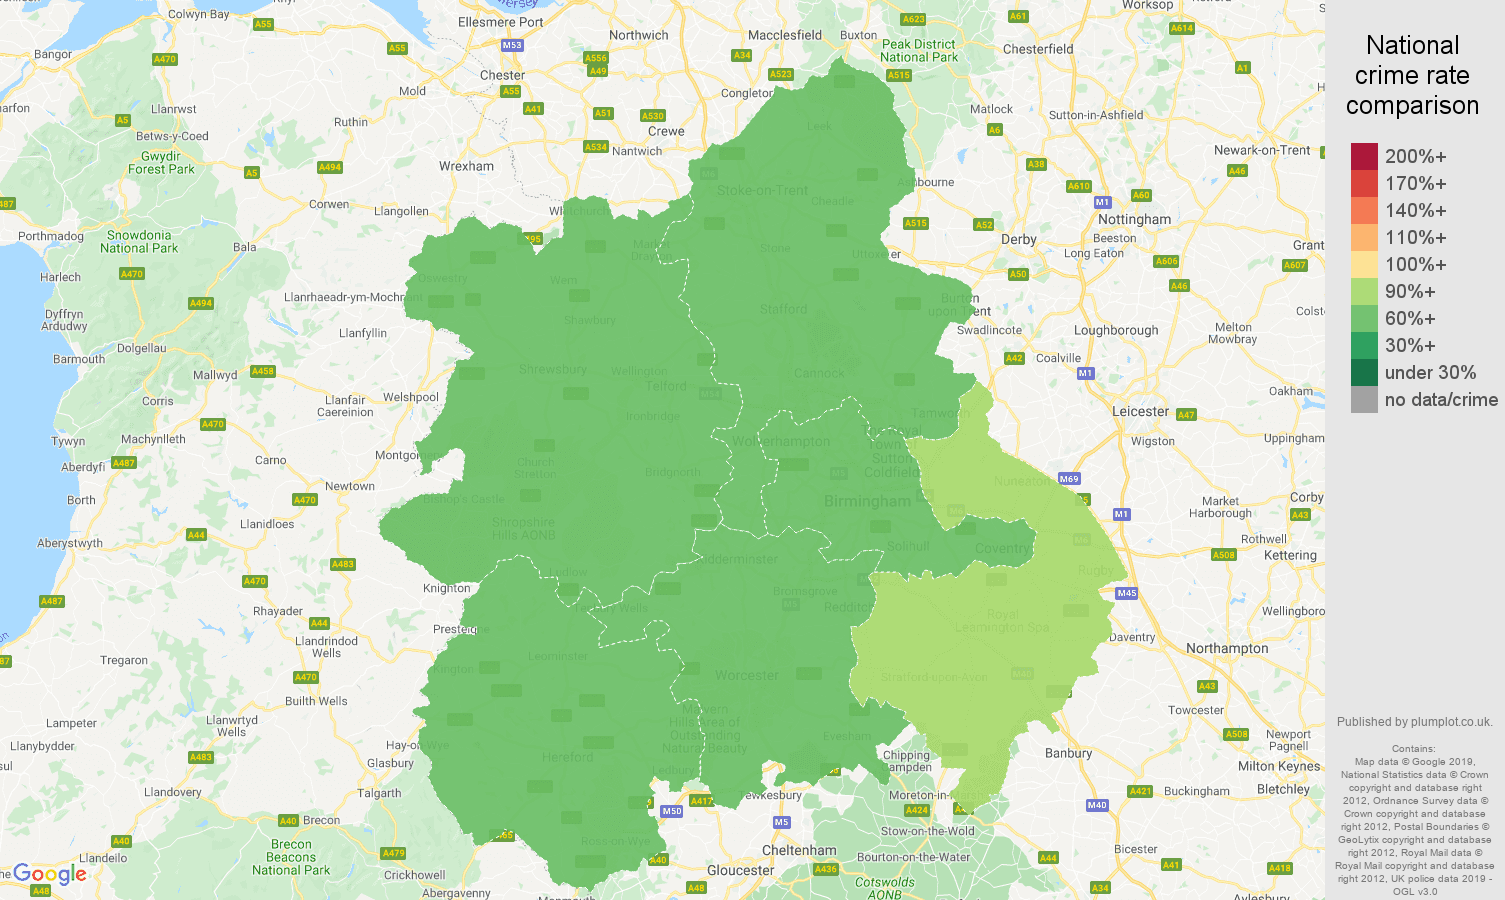 West Midlands other theft crime rate comparison map